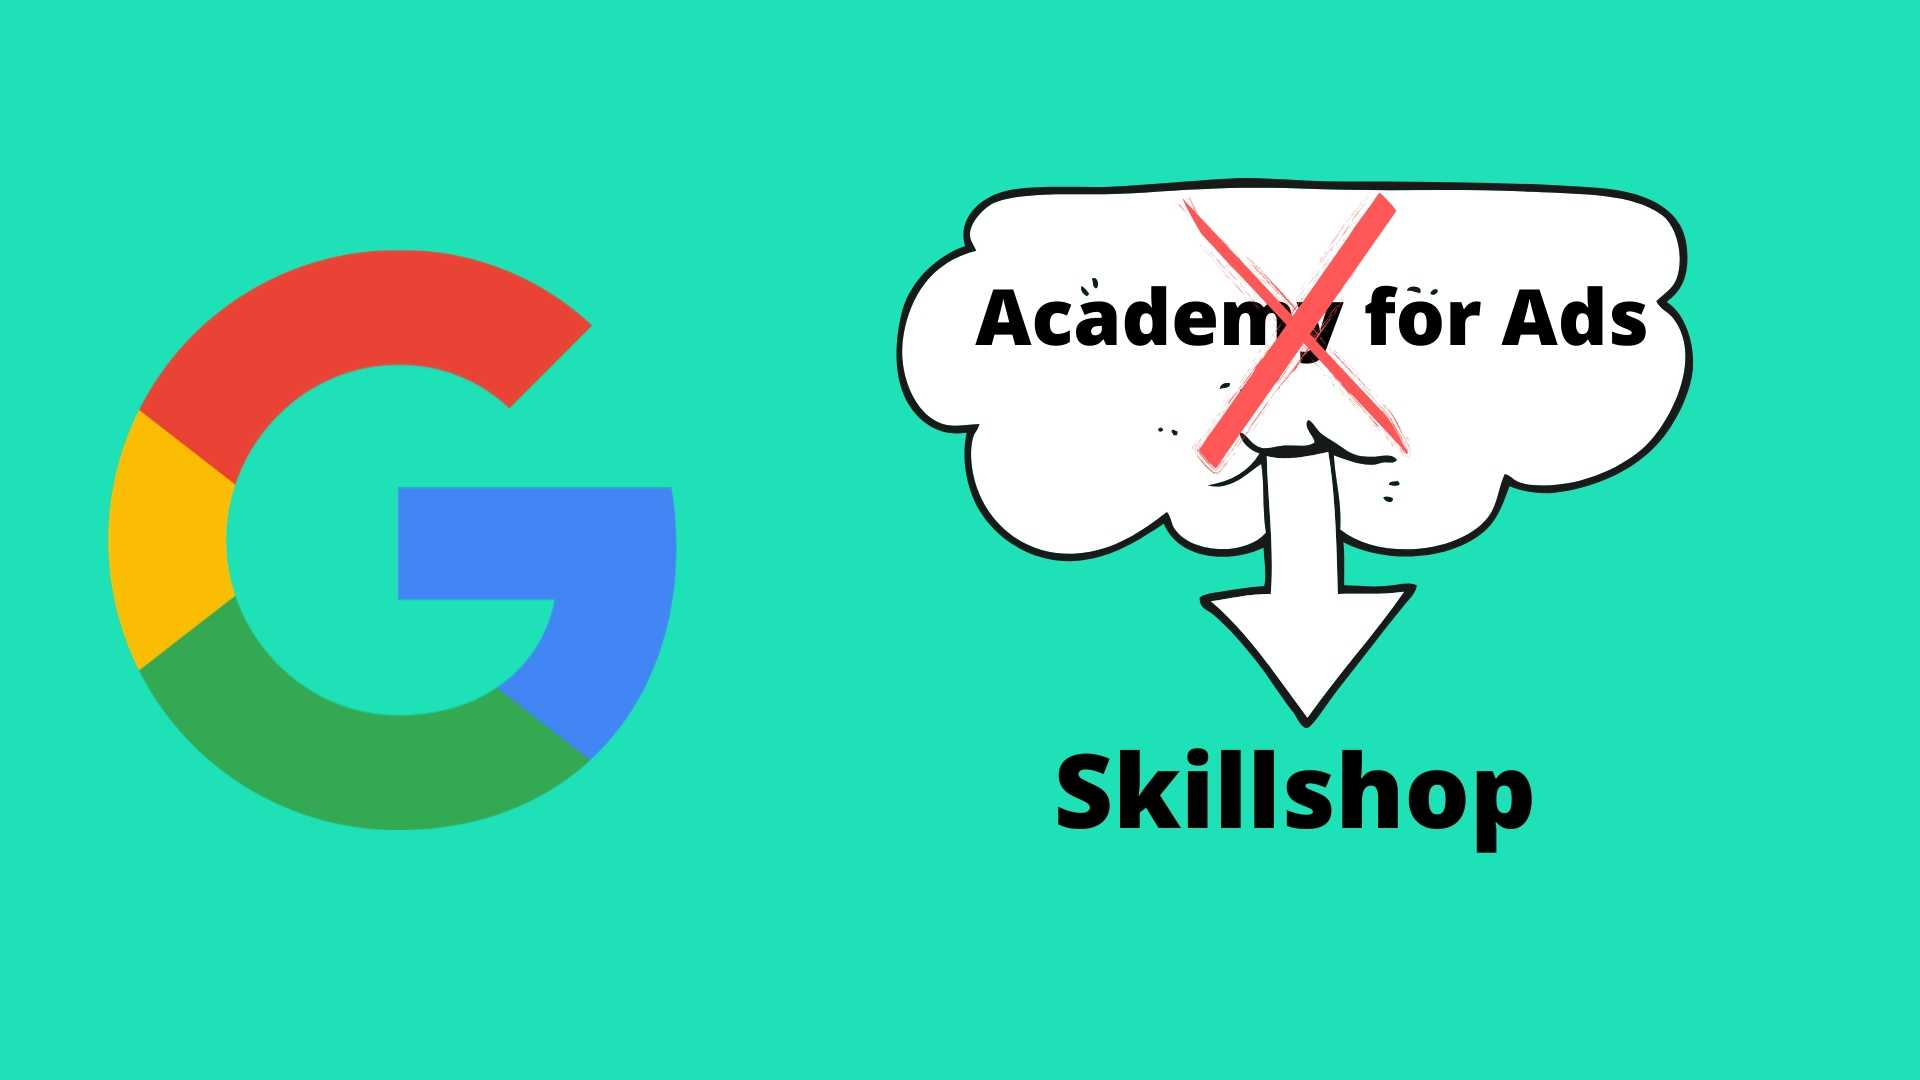 google academy courses and certification